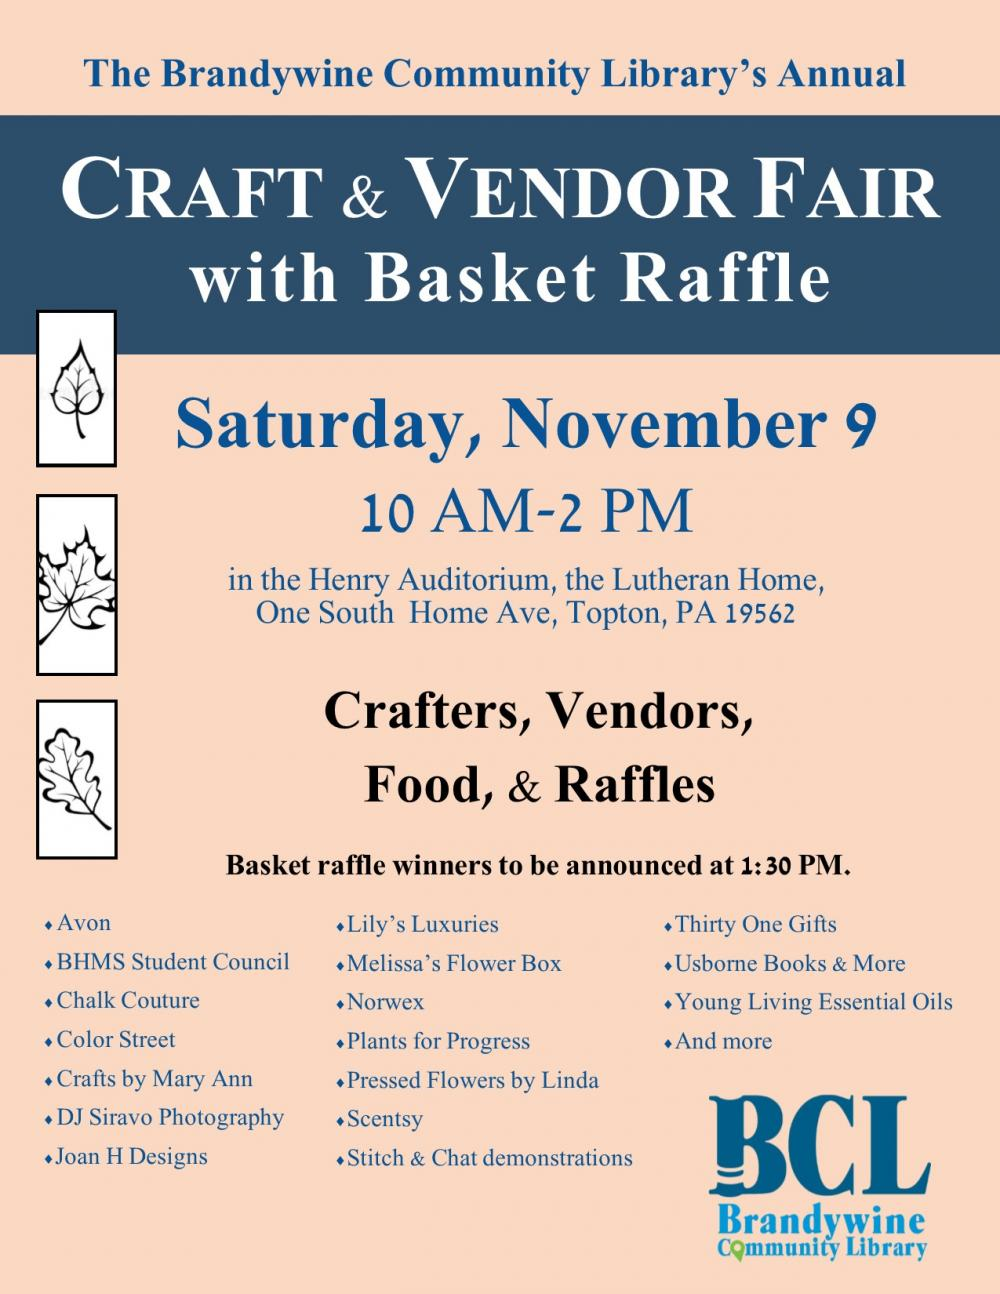 Craft and Vendor Fair Nov 9th to benefit the library